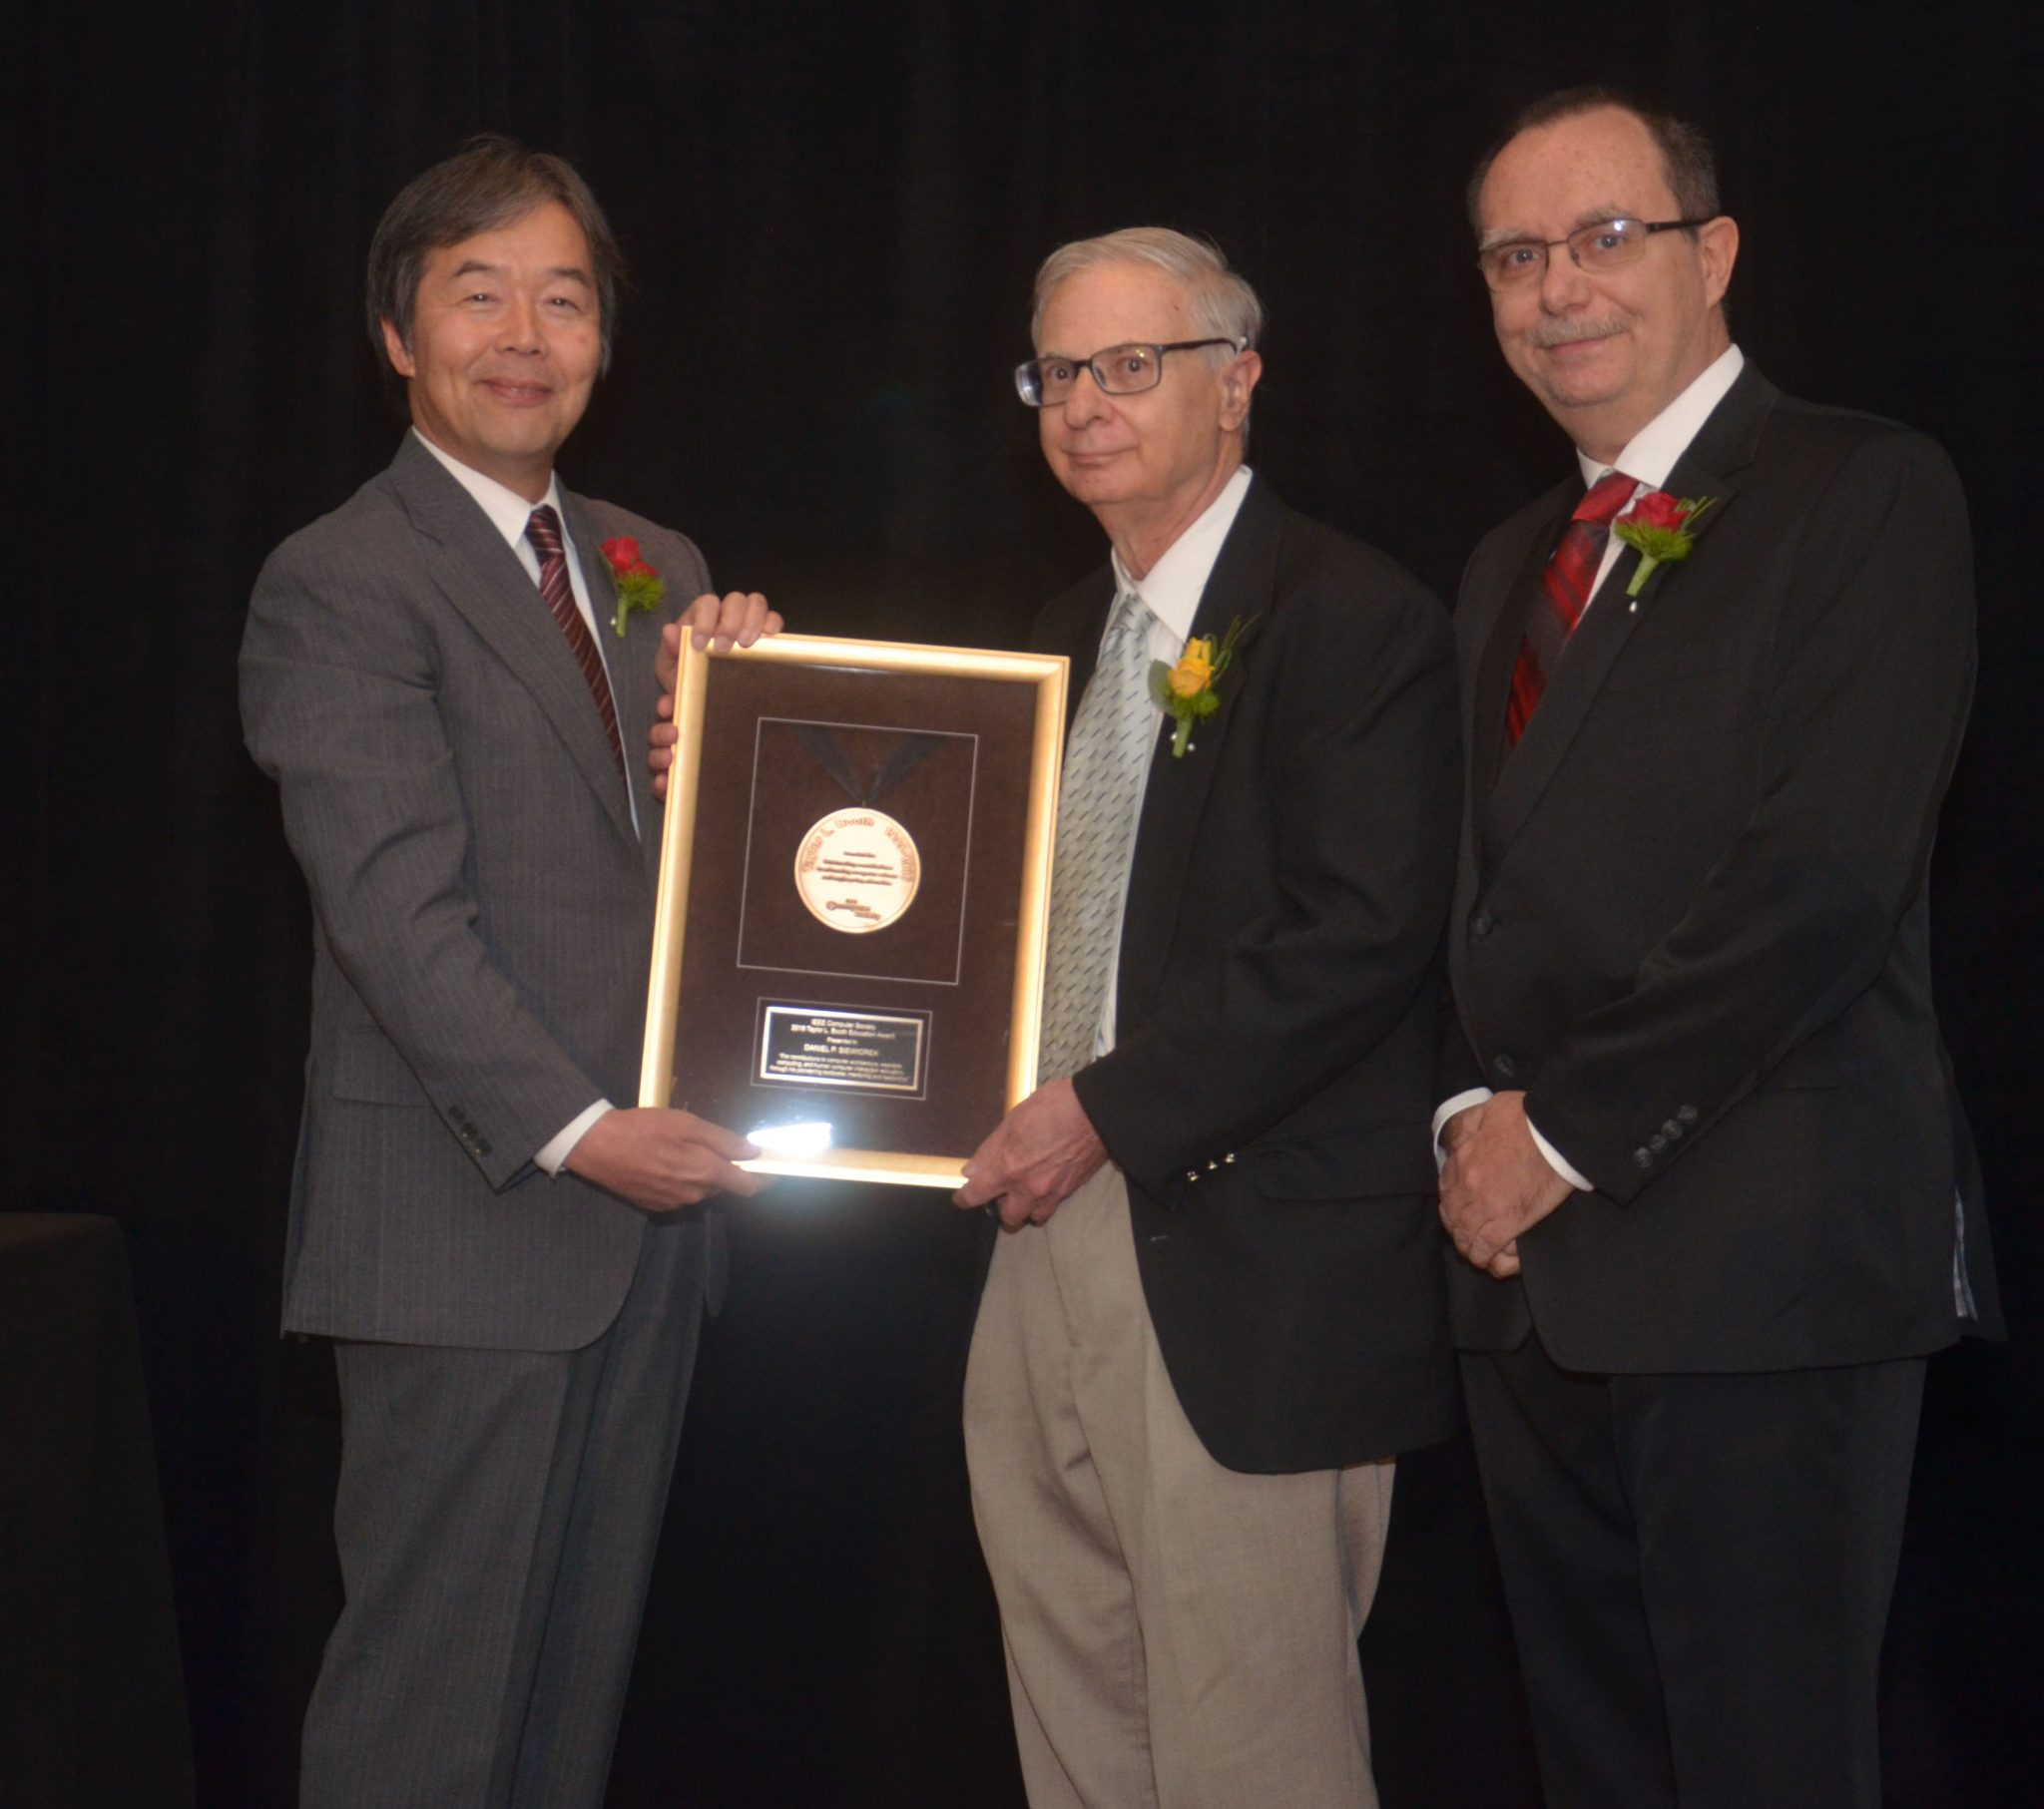 Daniel P. Siewiorek (center), Buhl University Professor of Electrical and Computer Engineering and Computer Science at Carnegie Mellon University, accepts the 2018 recipient of the IEEE Computer Society Taylor L. Booth Education Award.